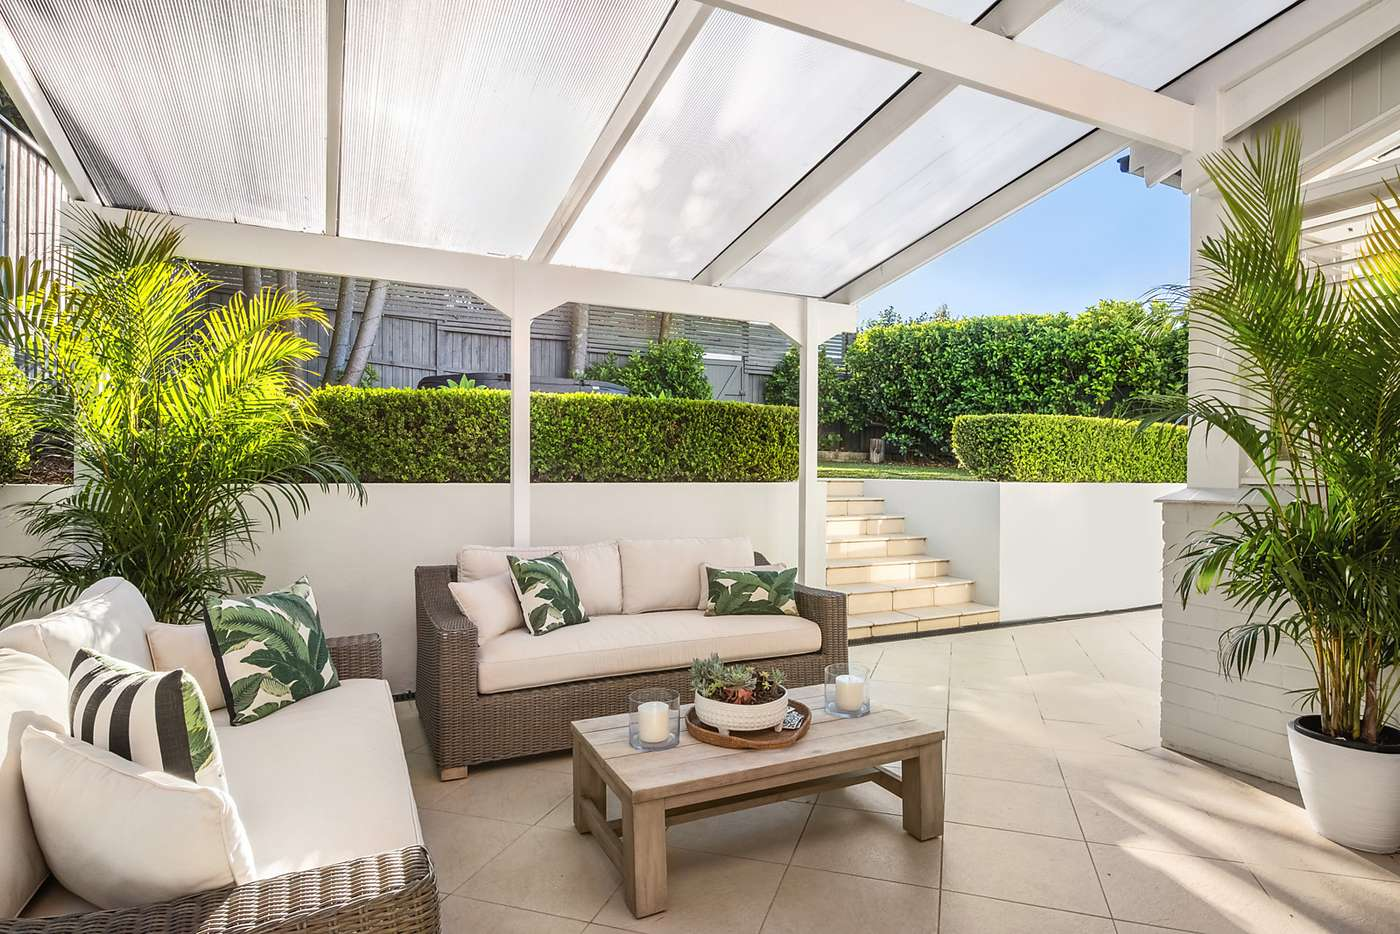 Sixth view of Homely house listing, 142 Cowles Road, Mosman NSW 2088